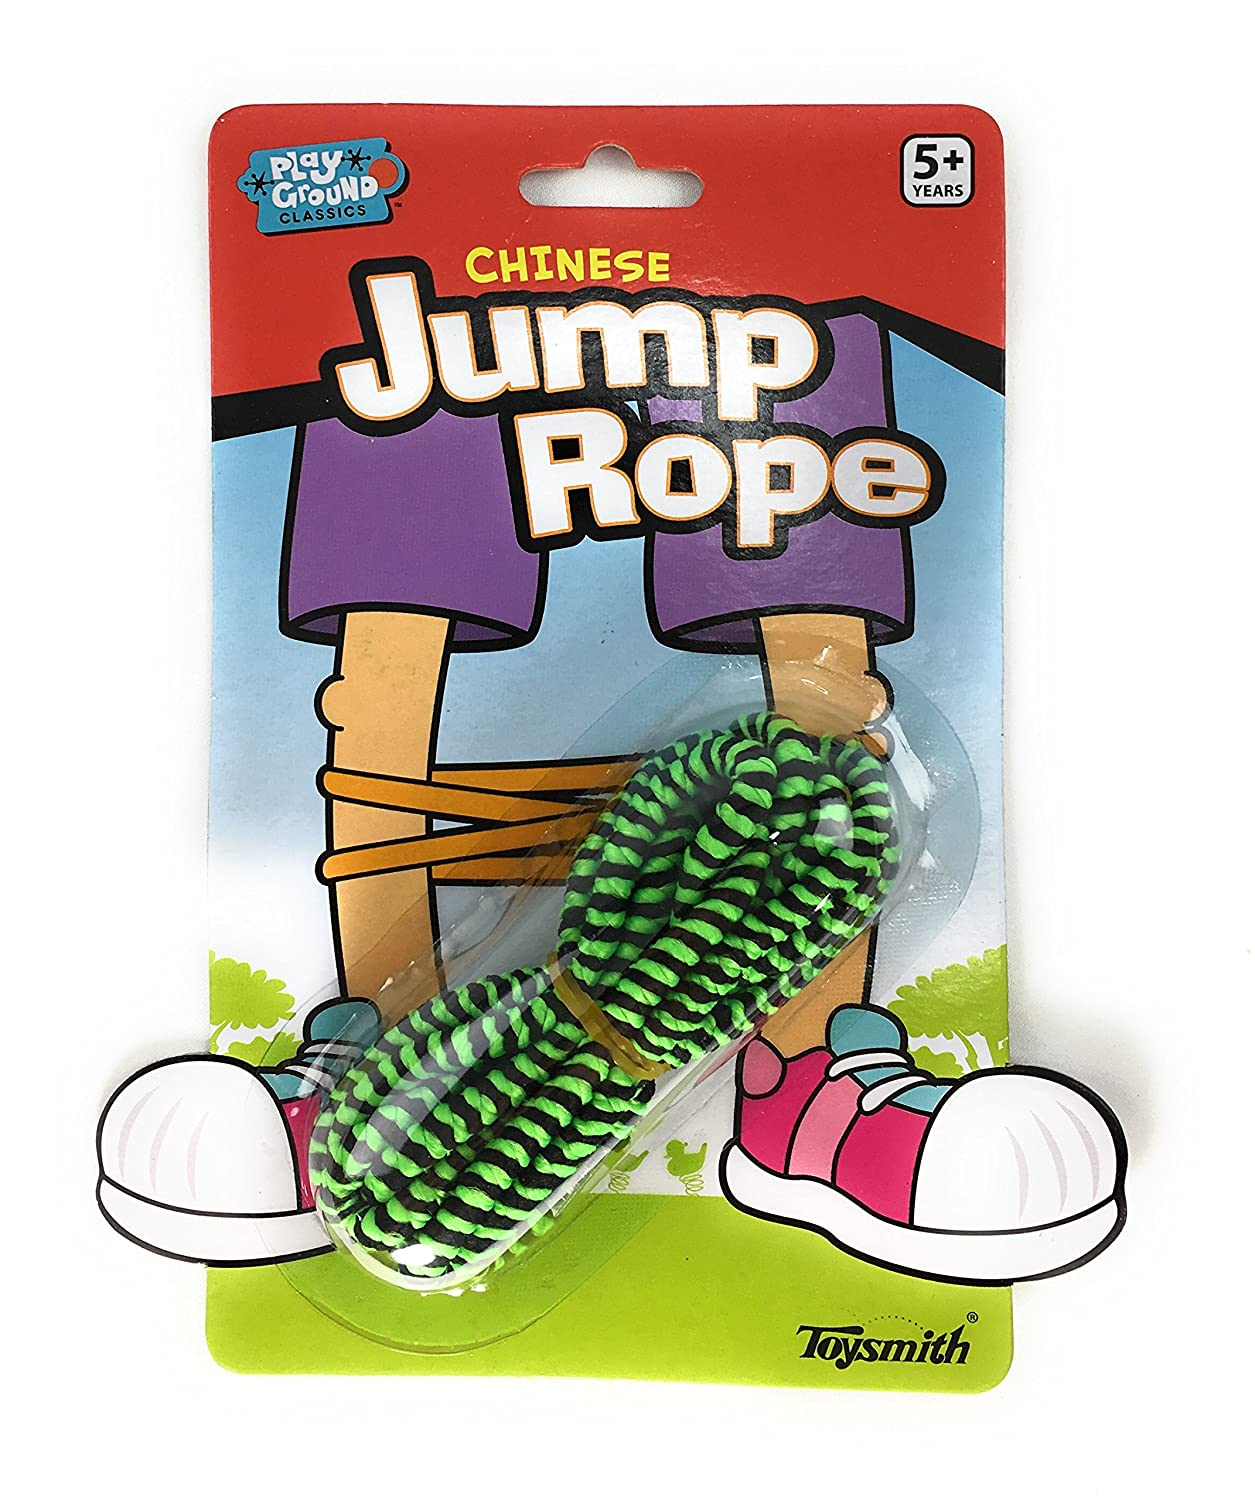 60 Toysmith Chinese Jump Rope 3 Pack Gift Set Party Bundle